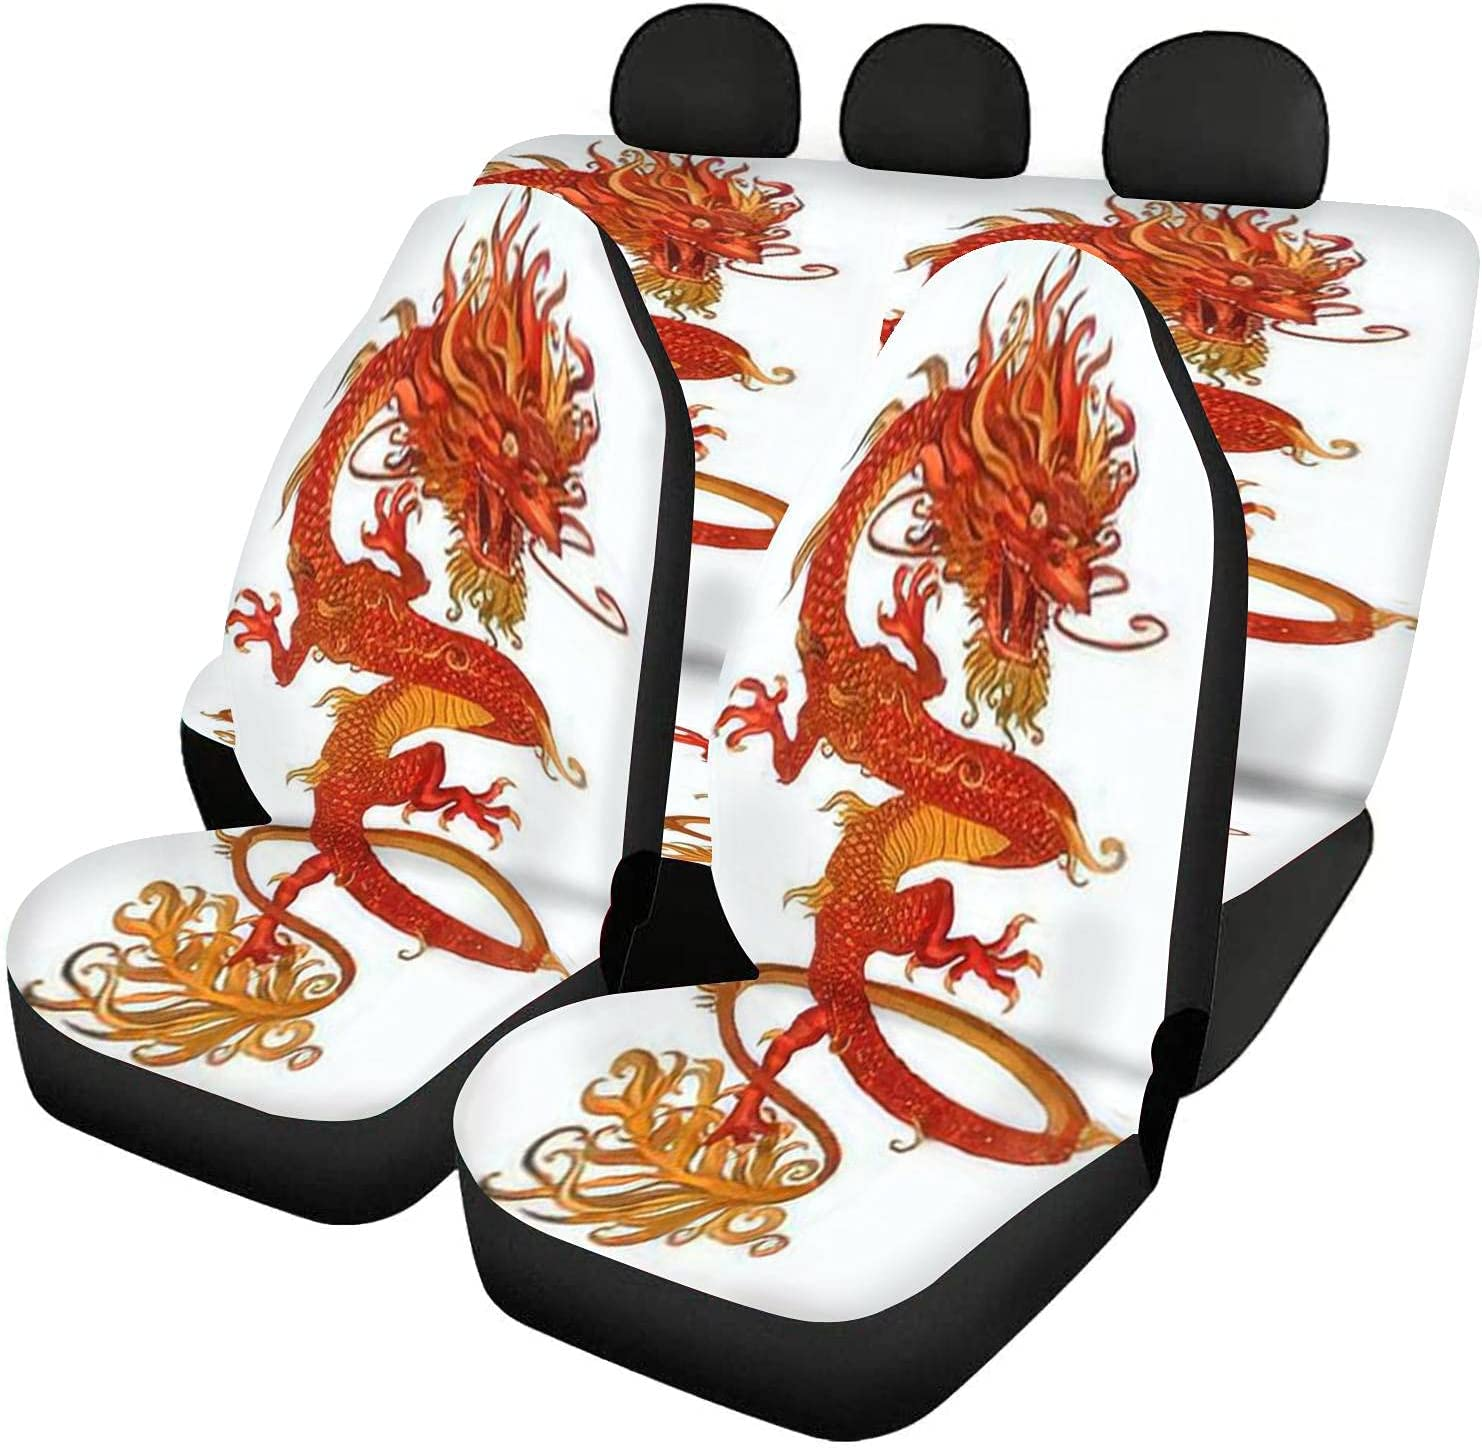 Omaha Mall GDSJEGQM Car Seat Covers Full Set Traditional Drag Chinese Portland Mall - red